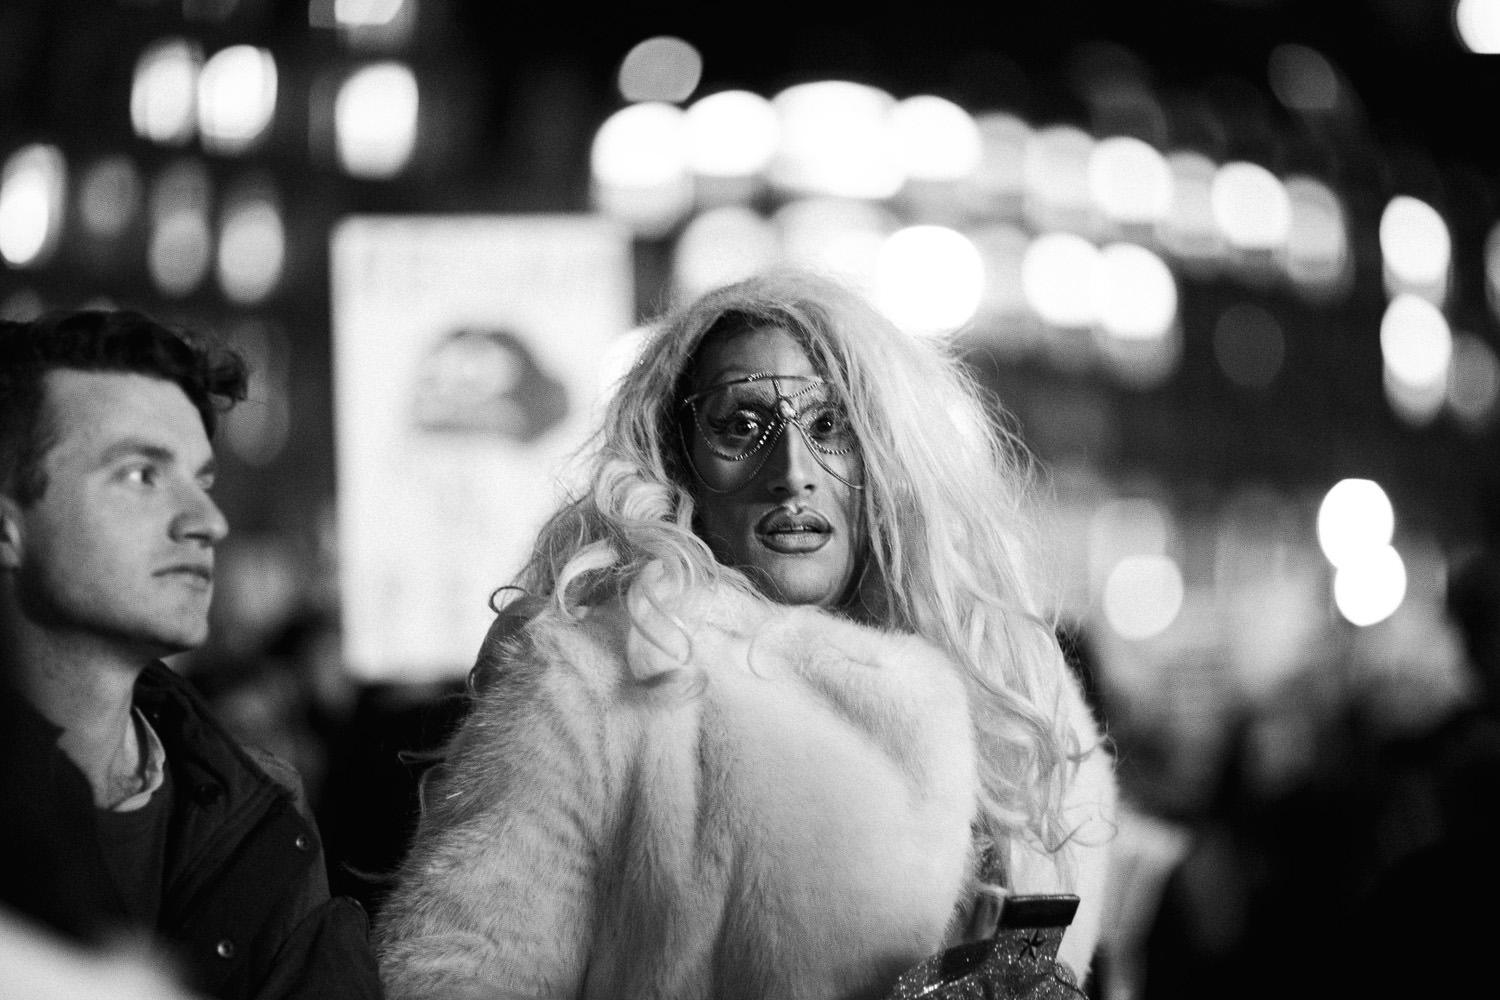 transvestite at London march against Trump state visit